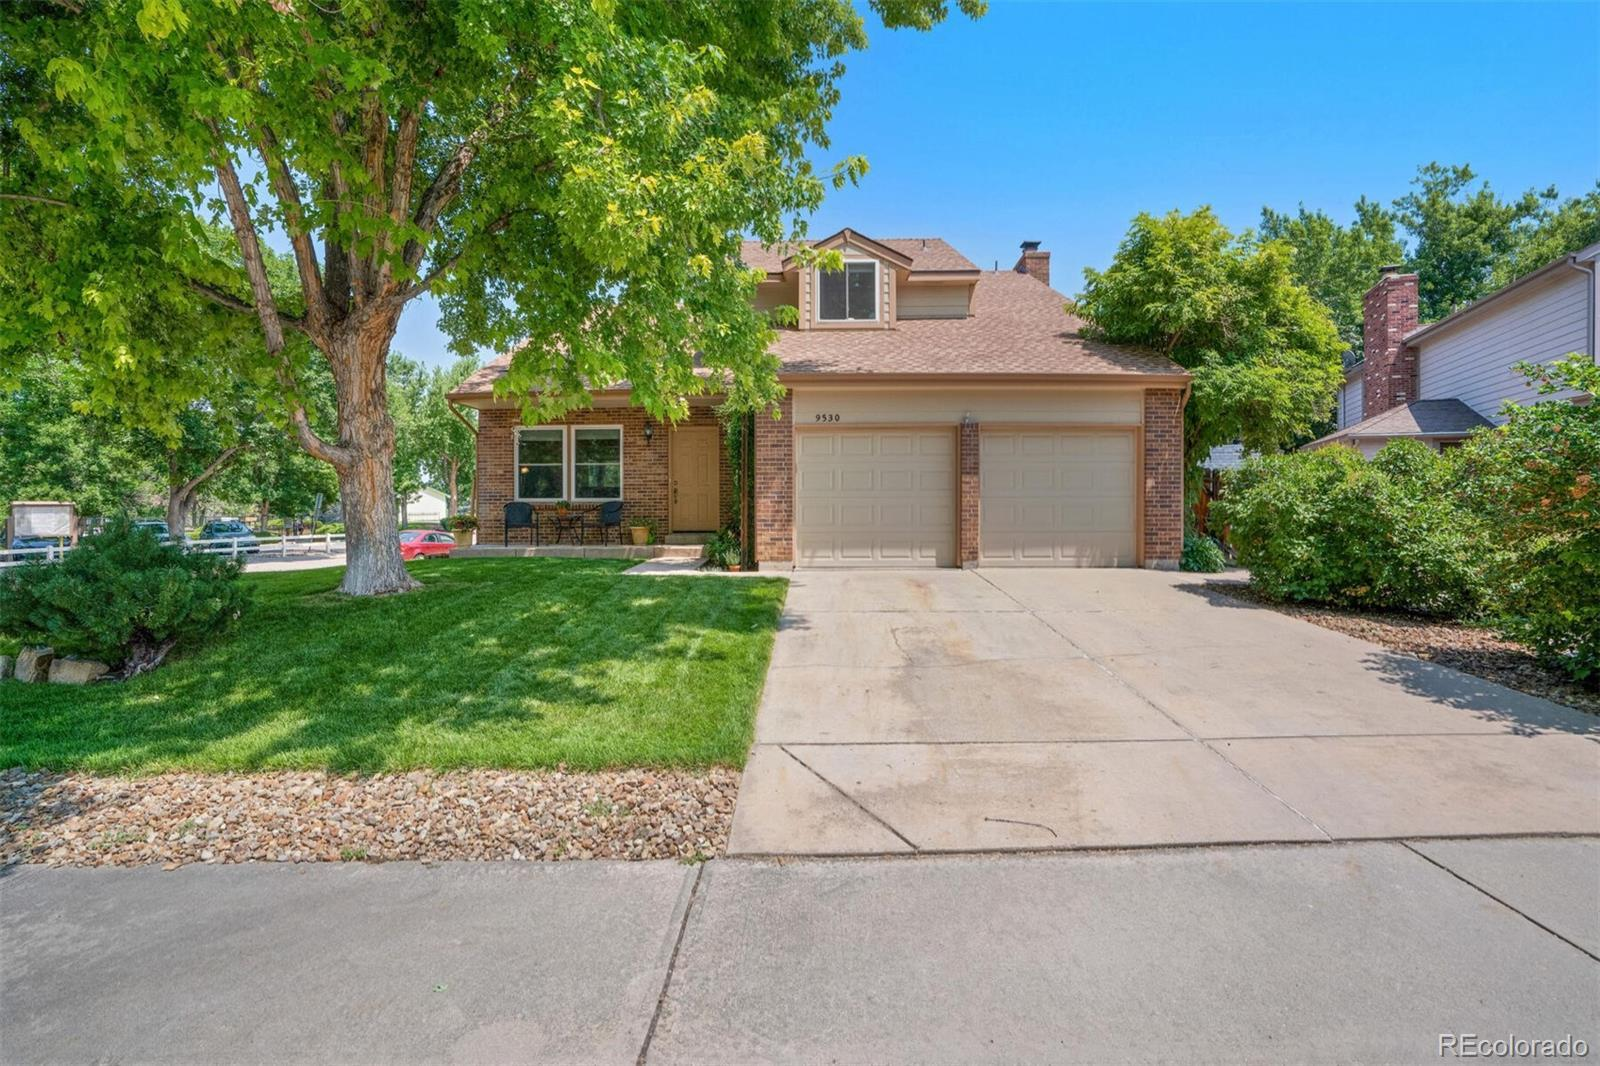 9530 W 82nd Place, Arvada, CO 80005 - #: 4455619